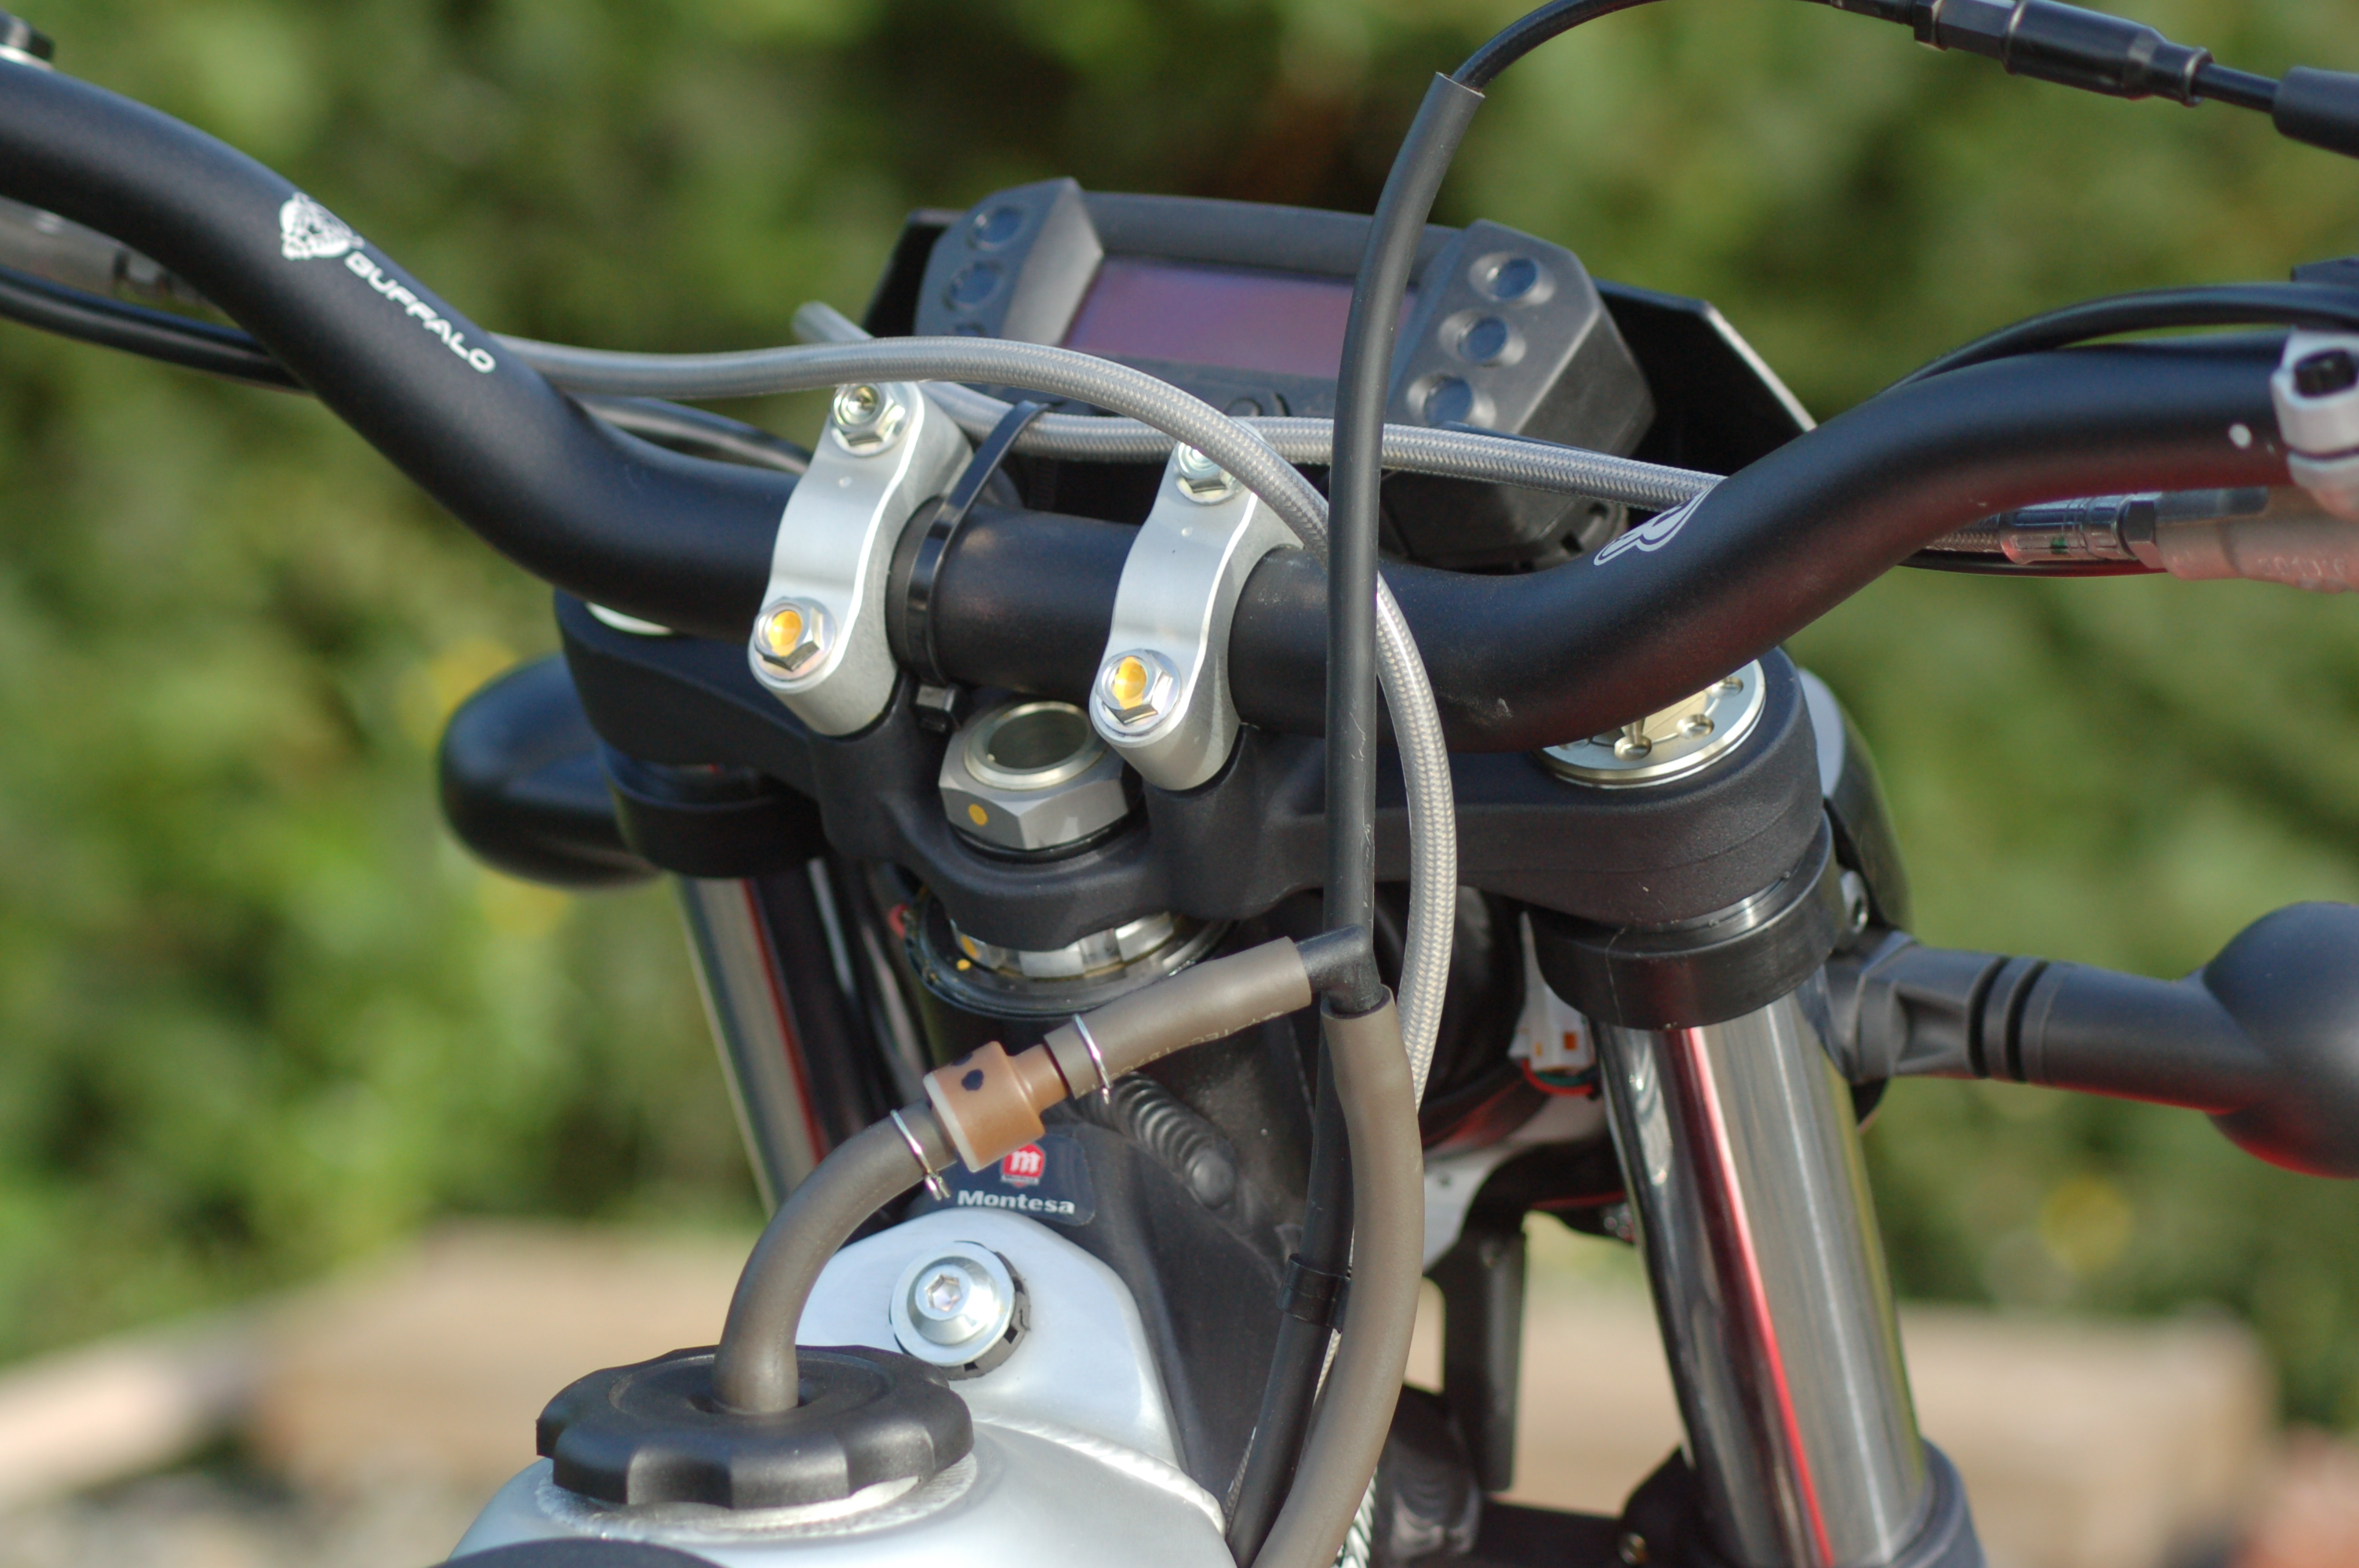 Montesa clock and breather detail